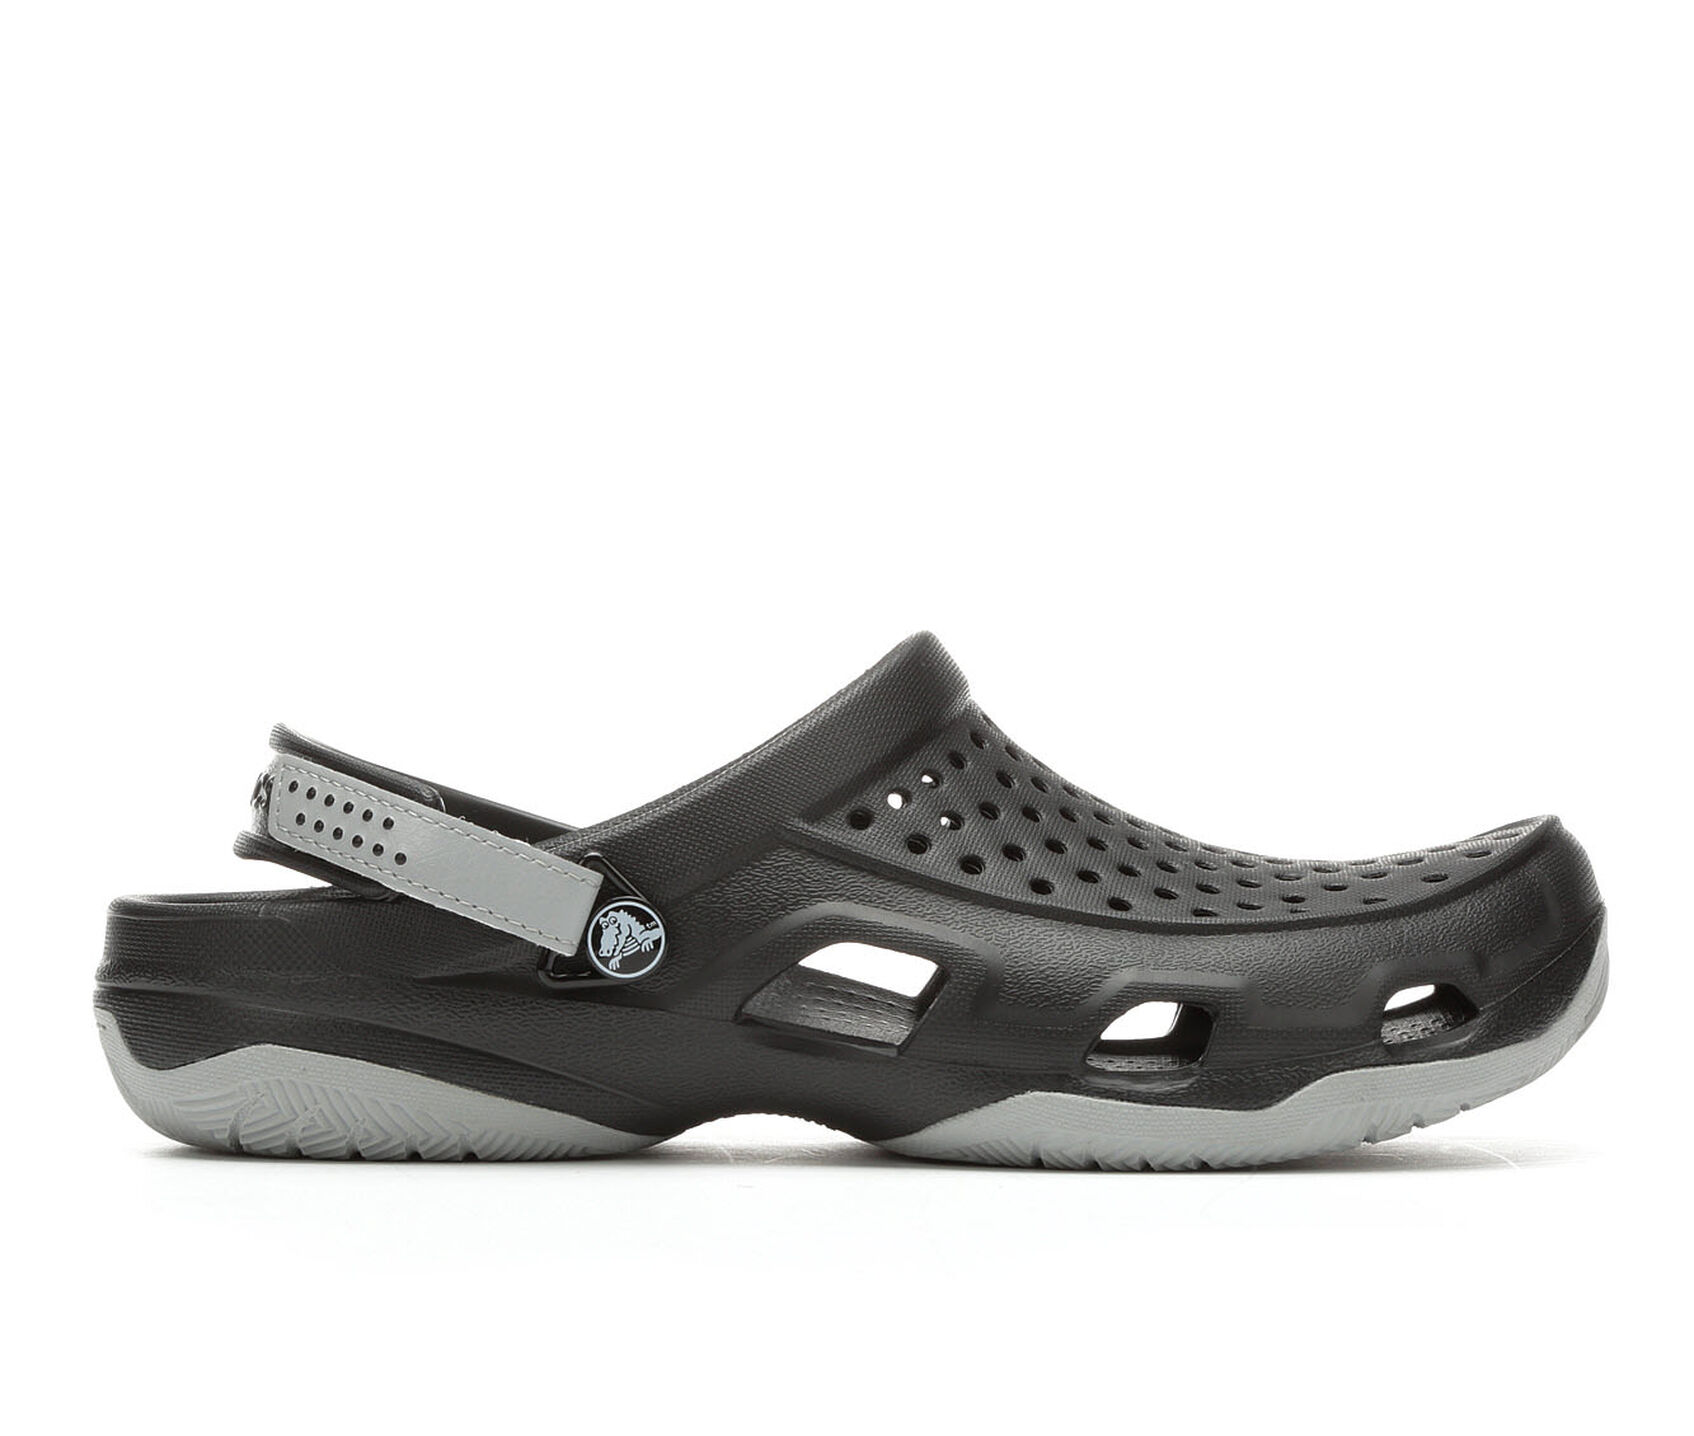 2a7ef6b39712e Men's Crocs Swiftwater Deck Clog | Shoe Carnival